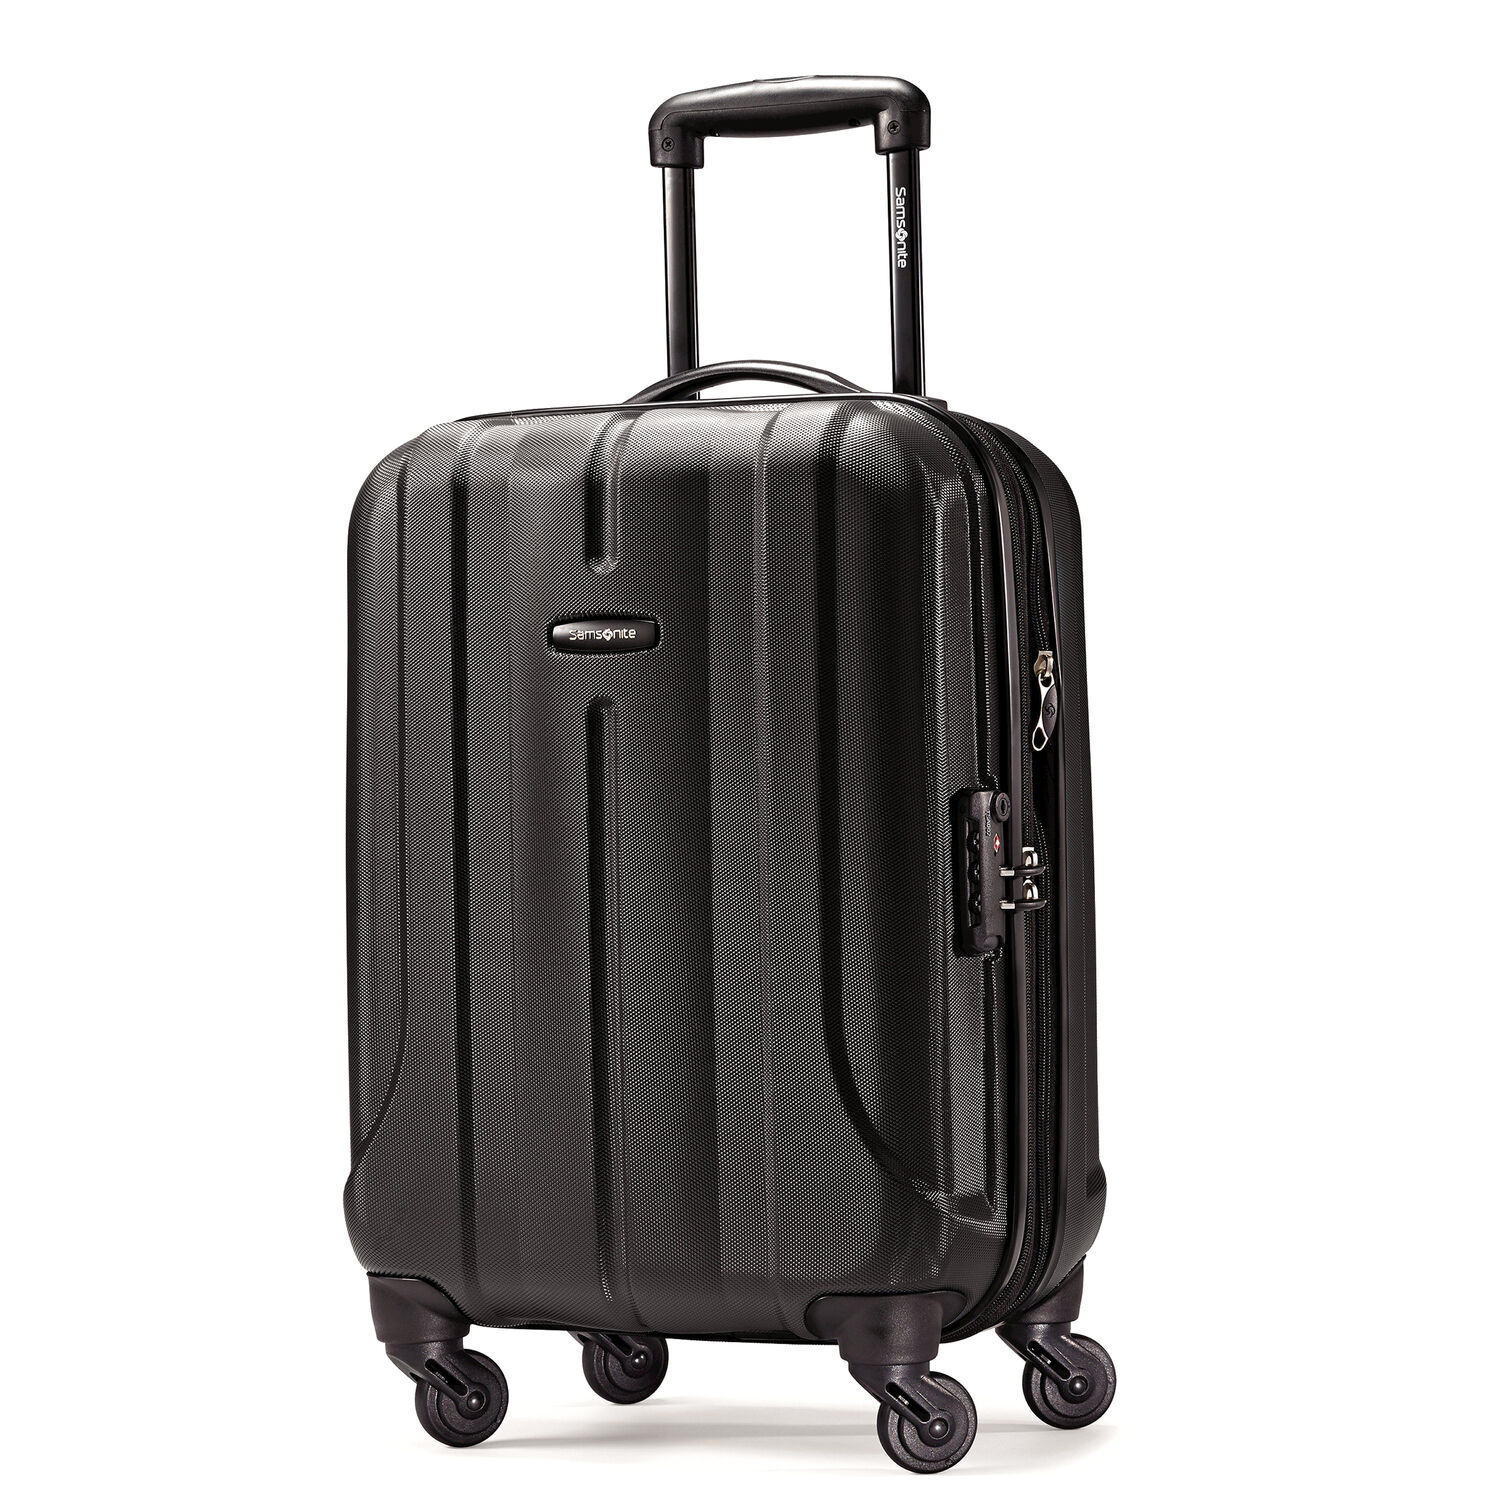 Samsonite Fiero 20 Quot Spinner